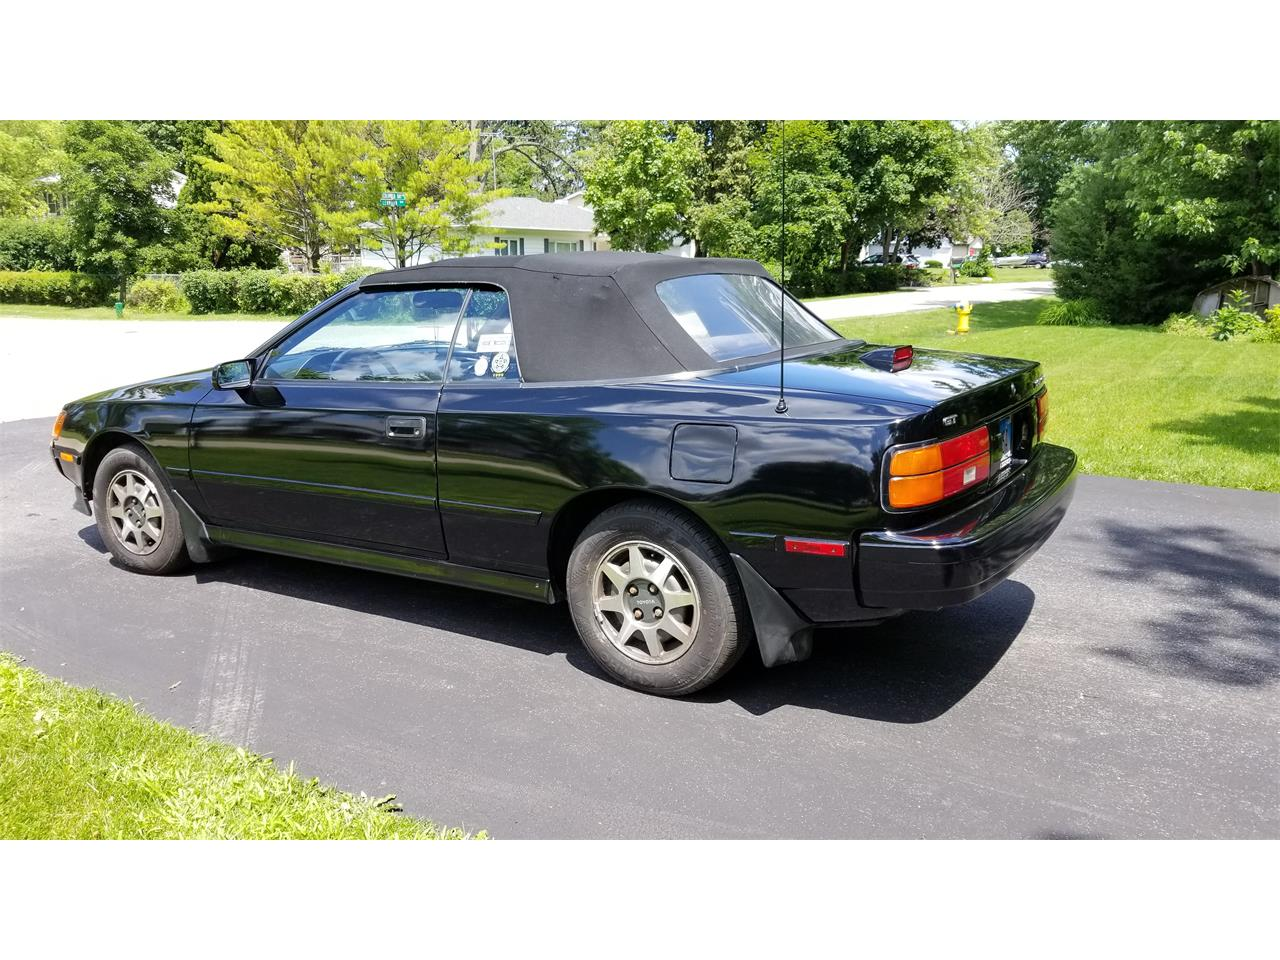 1988 Toyota Celica (CC-1234808) for sale in LAKE VILLA, Illinois